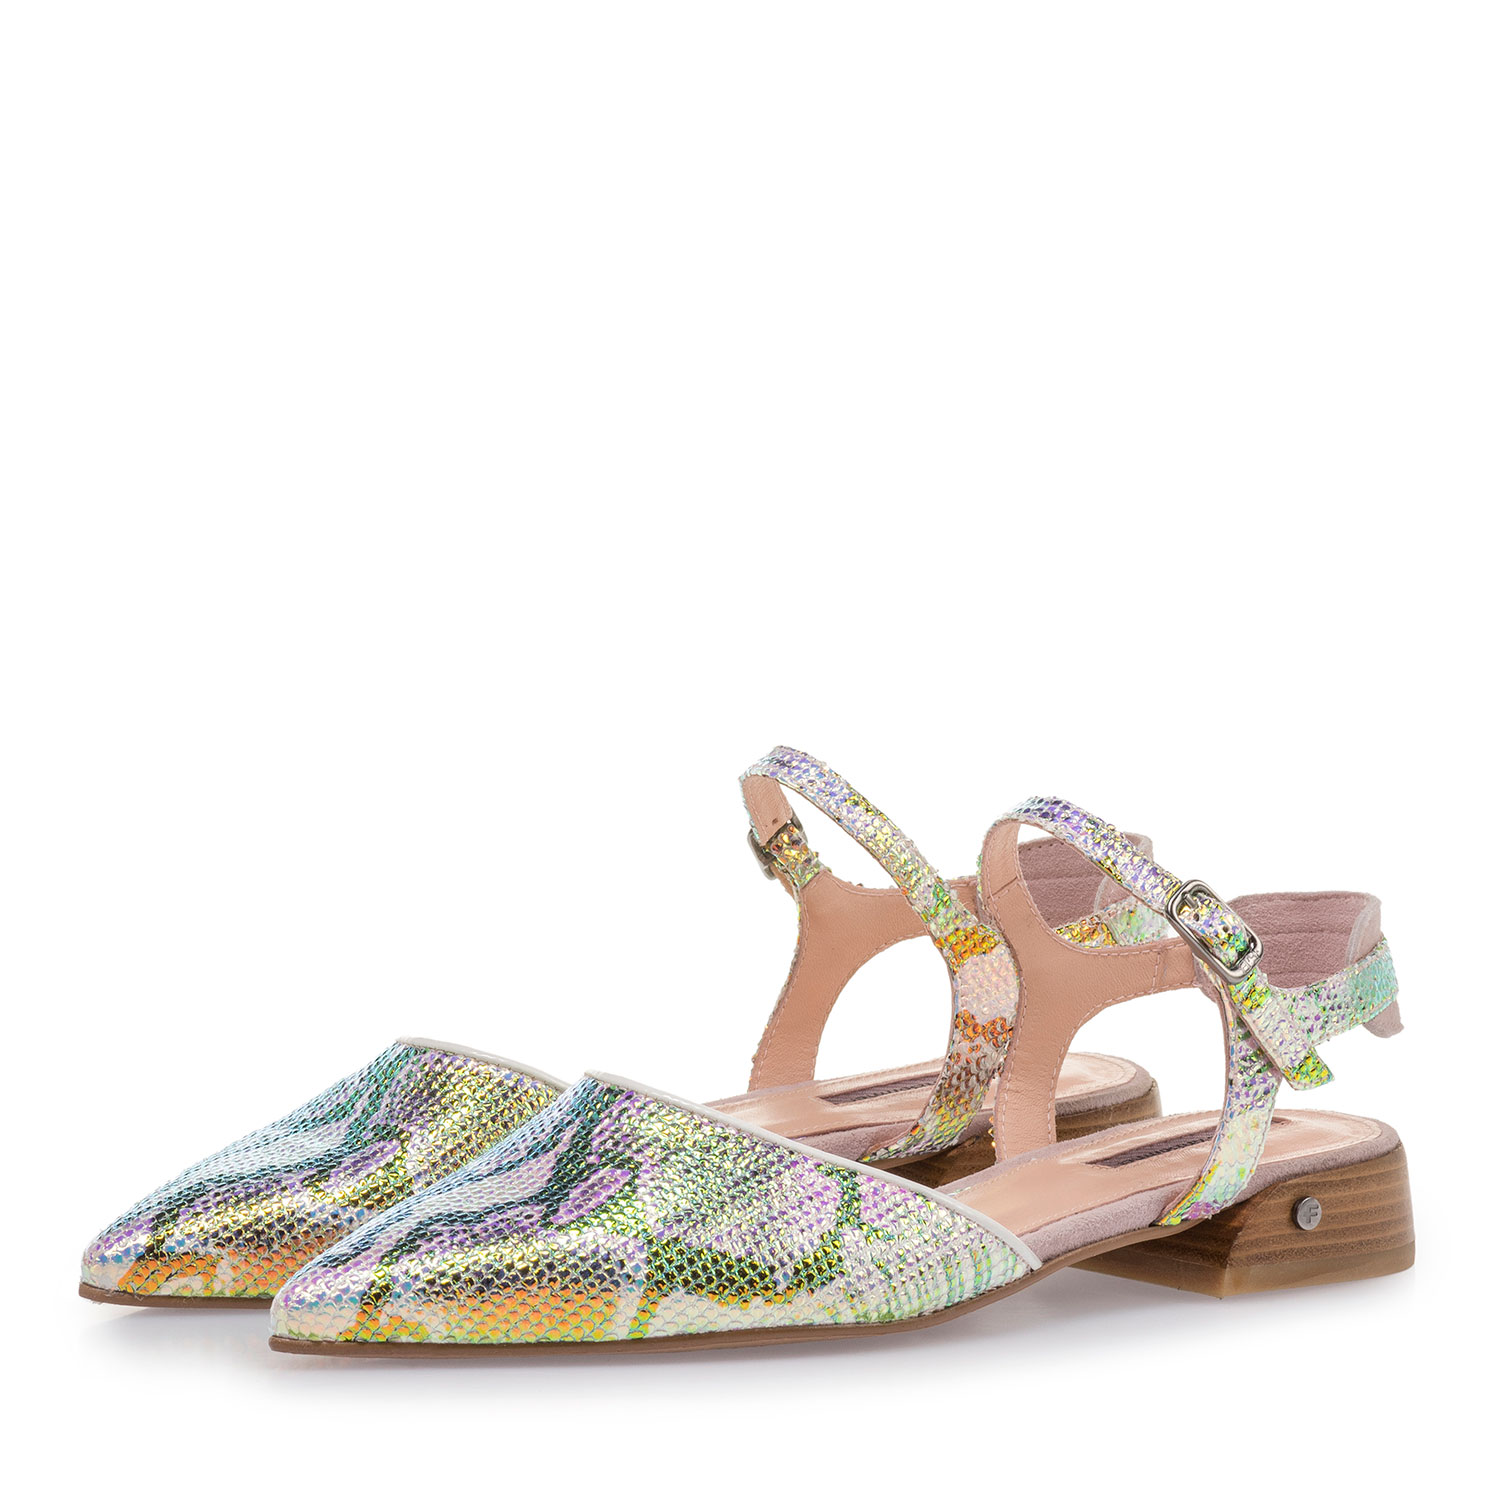 85960/01 - Leather sandals with green/gold metallic print